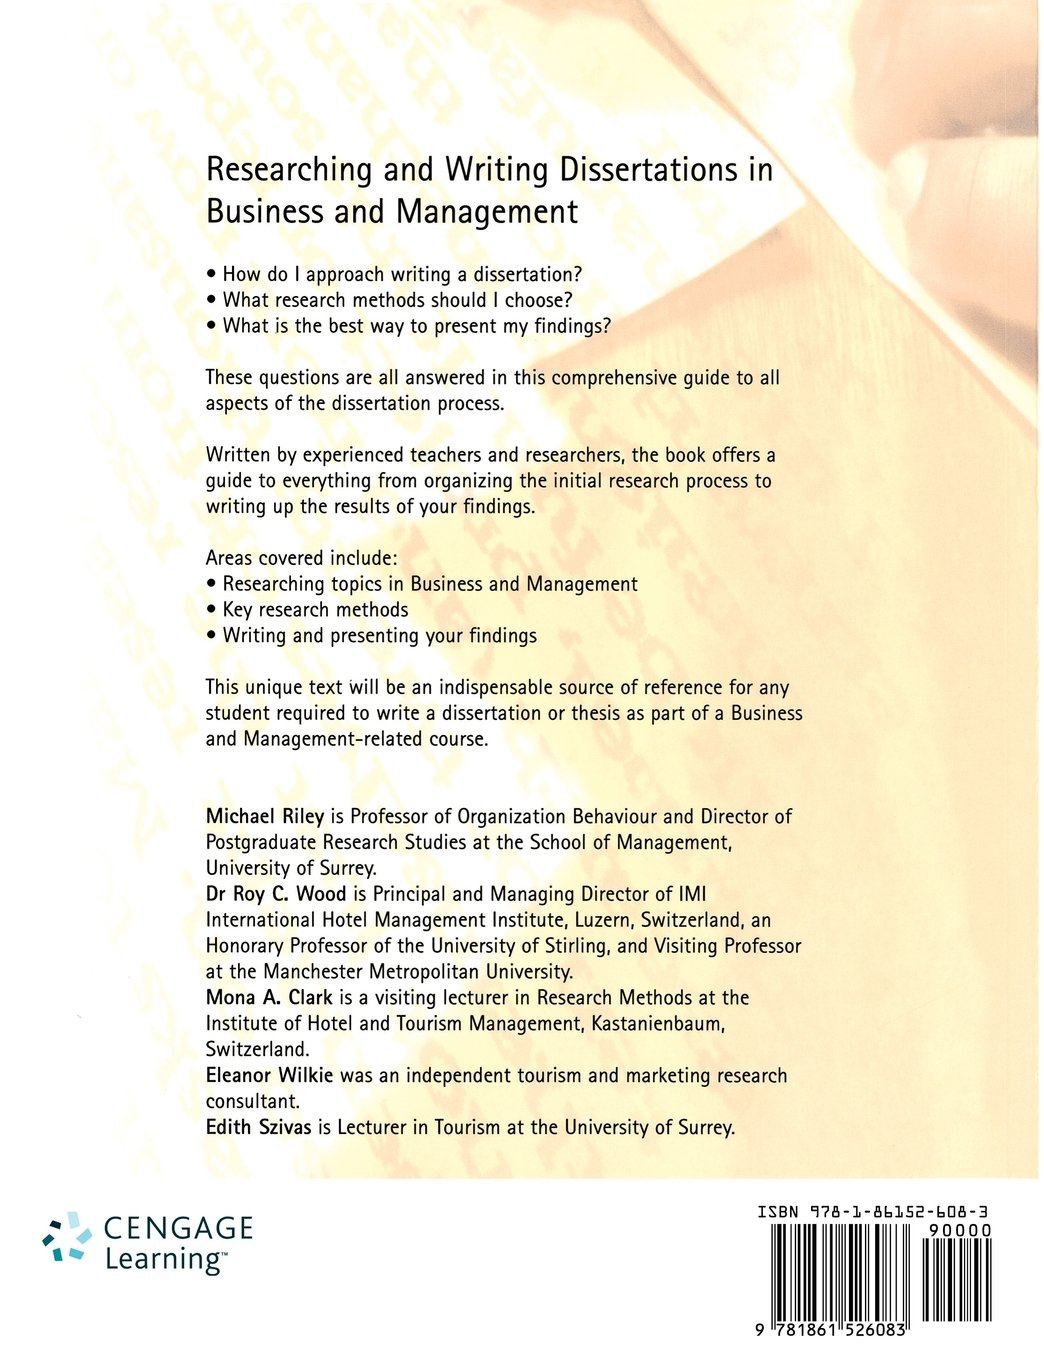 researching and writing dissertations in business and management researching and writing dissertations in business and management amazon co uk michael riley roy c wood mona clark eleanor wilkie edith szivas